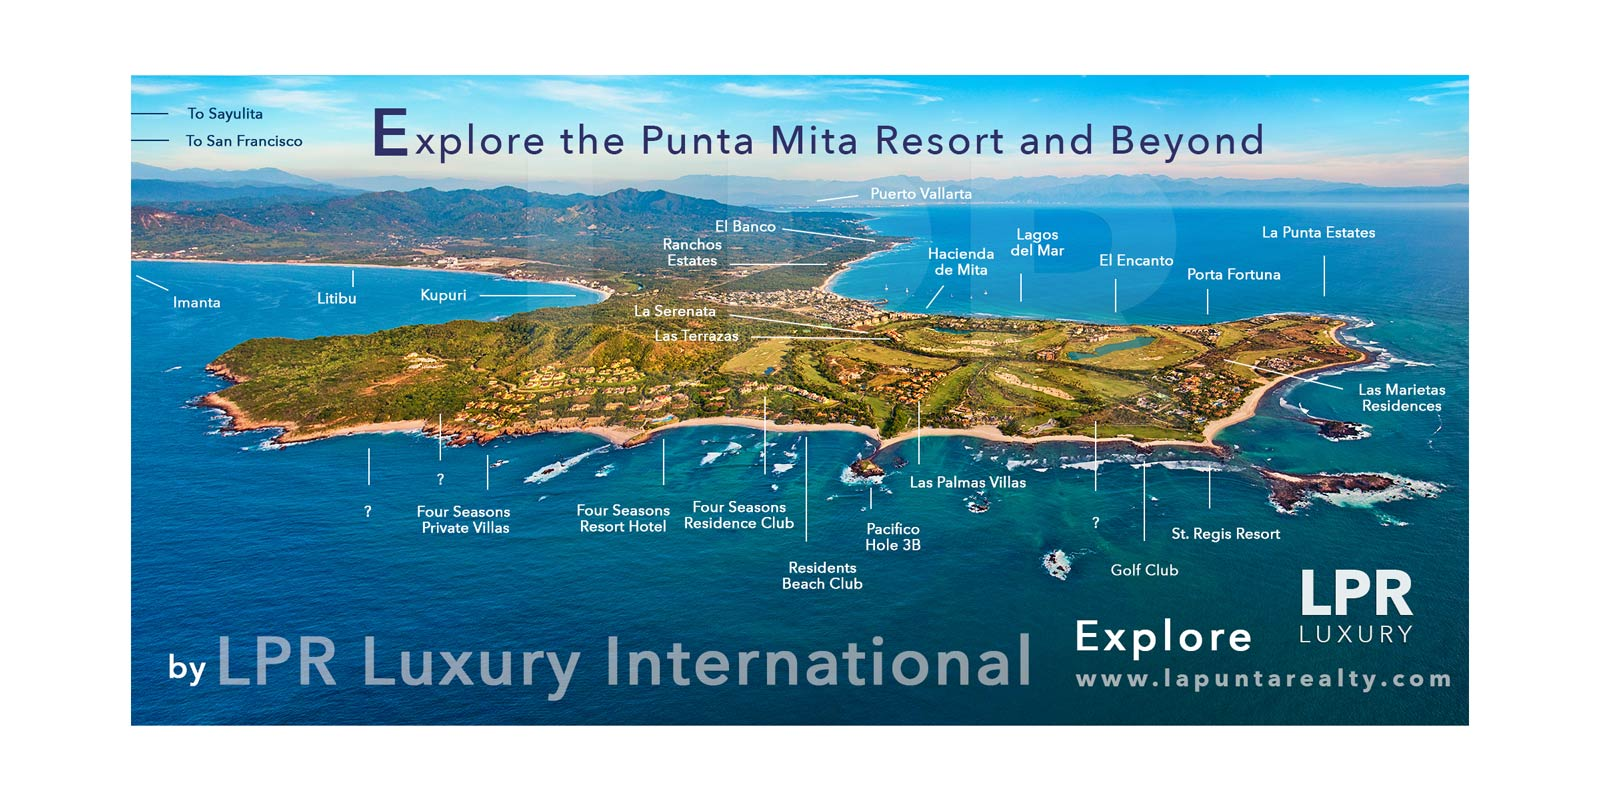 explore lpr luxury - the agency in luxury punta mita real estate